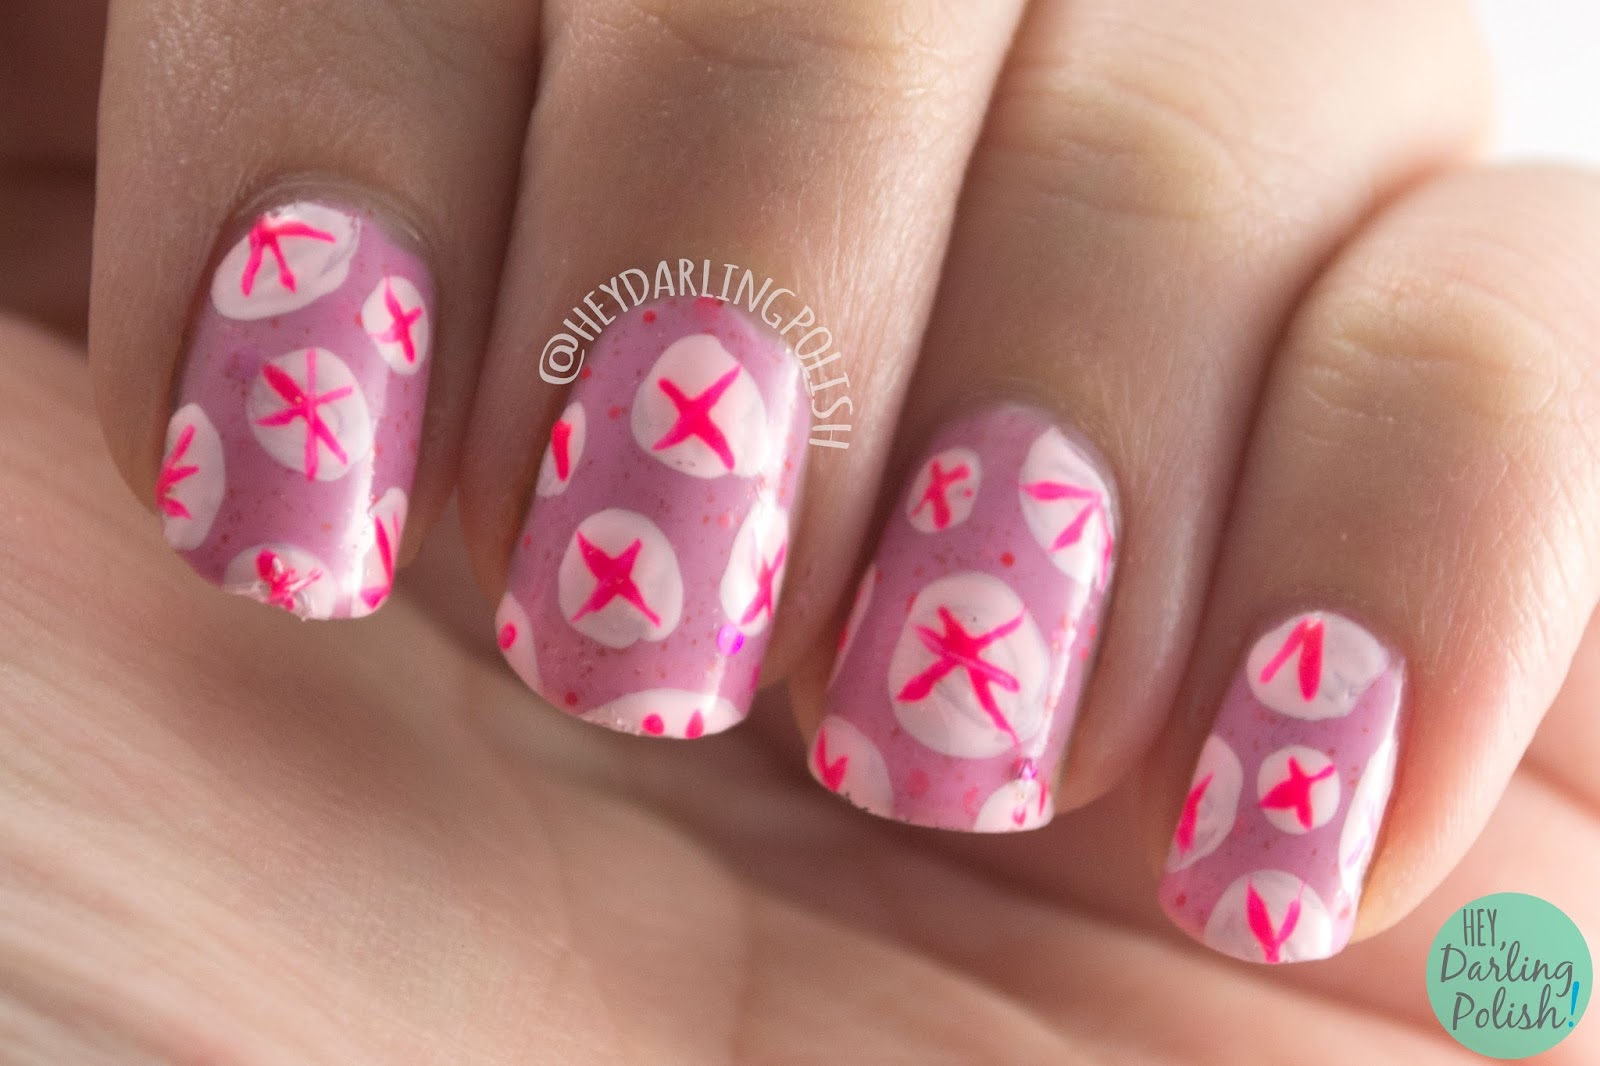 nails, nail art, nail polish, pink, hey darling polish, polka dots, stripes, pattern, nail linkup